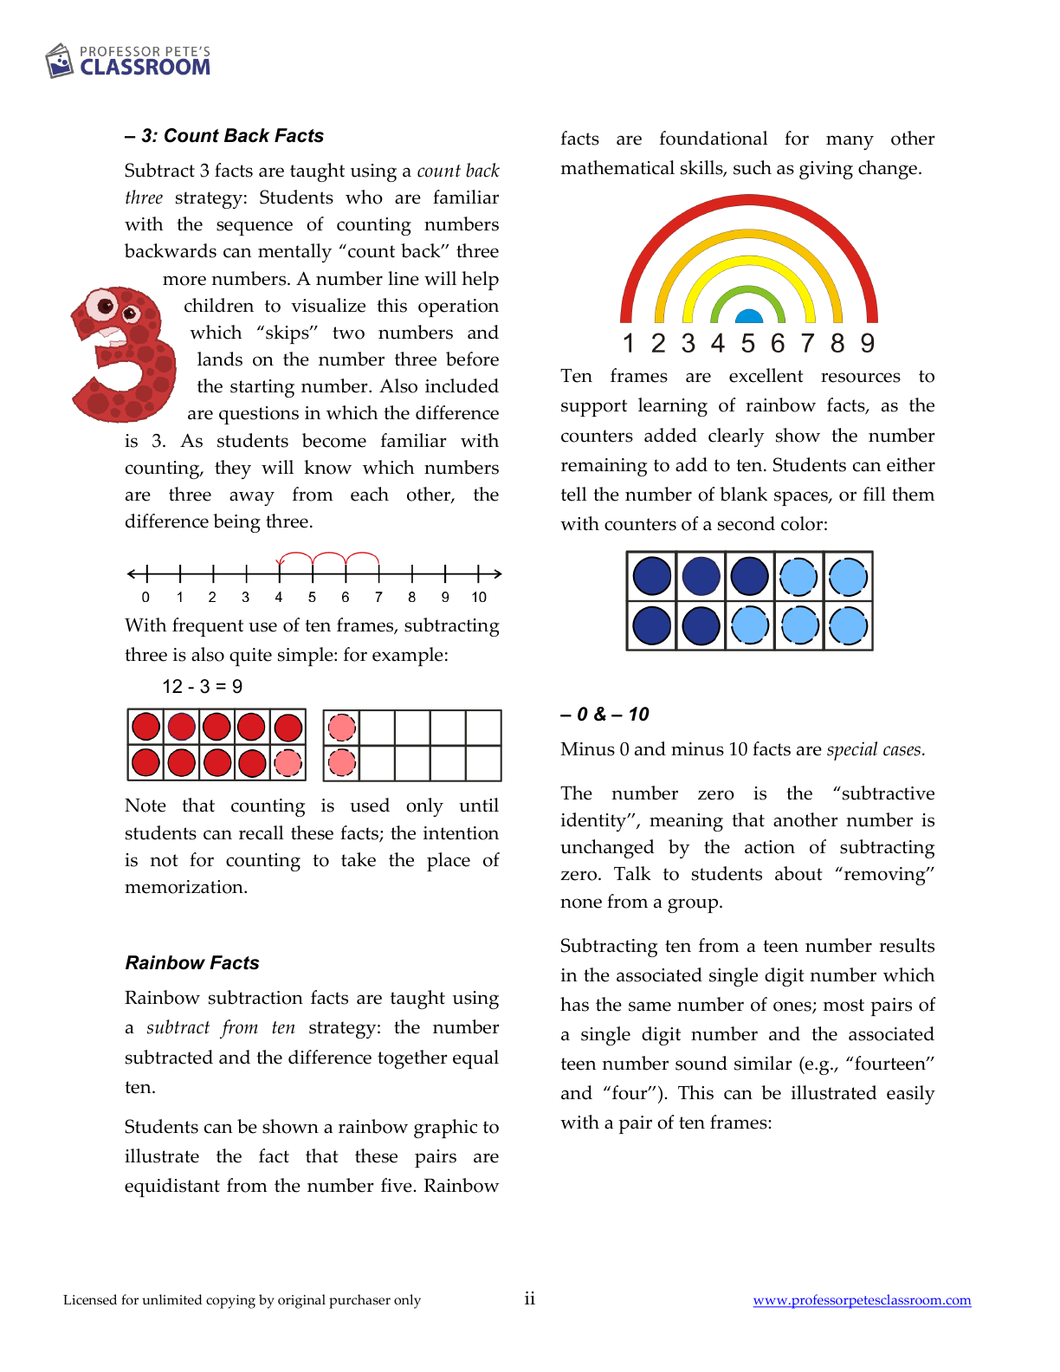 5th grade math workbook ebook 80 off images free ebooks and more yr 3 ebook ten minutes a day level 1 book 2 subtraction yr 3 ebook ten fandeluxe Images